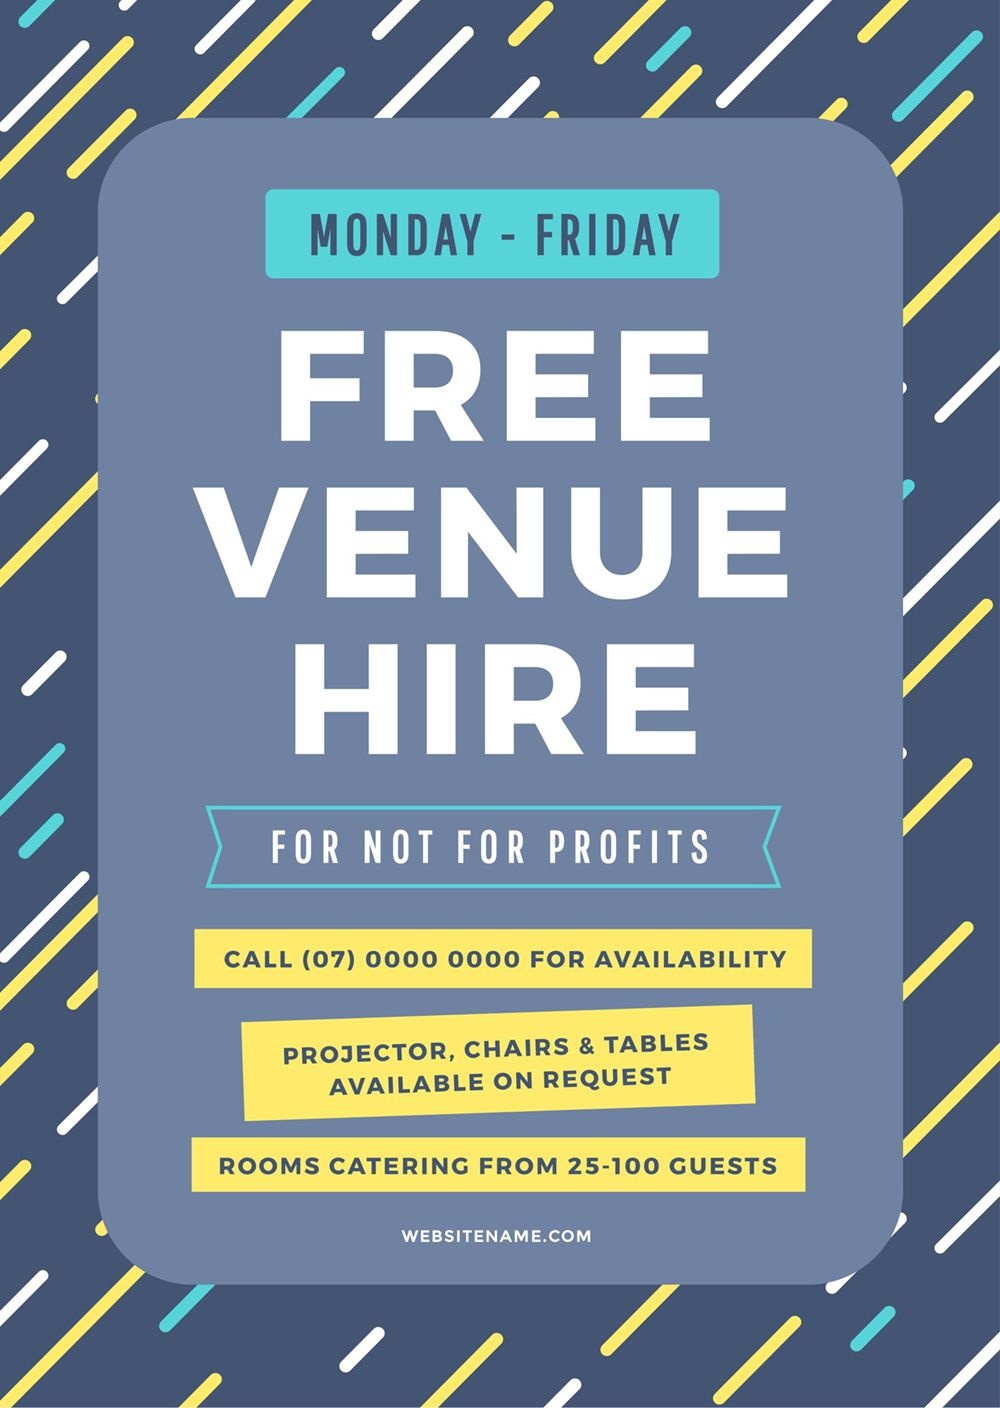 How to Get More Event Bookings at your Venue 21 Easy